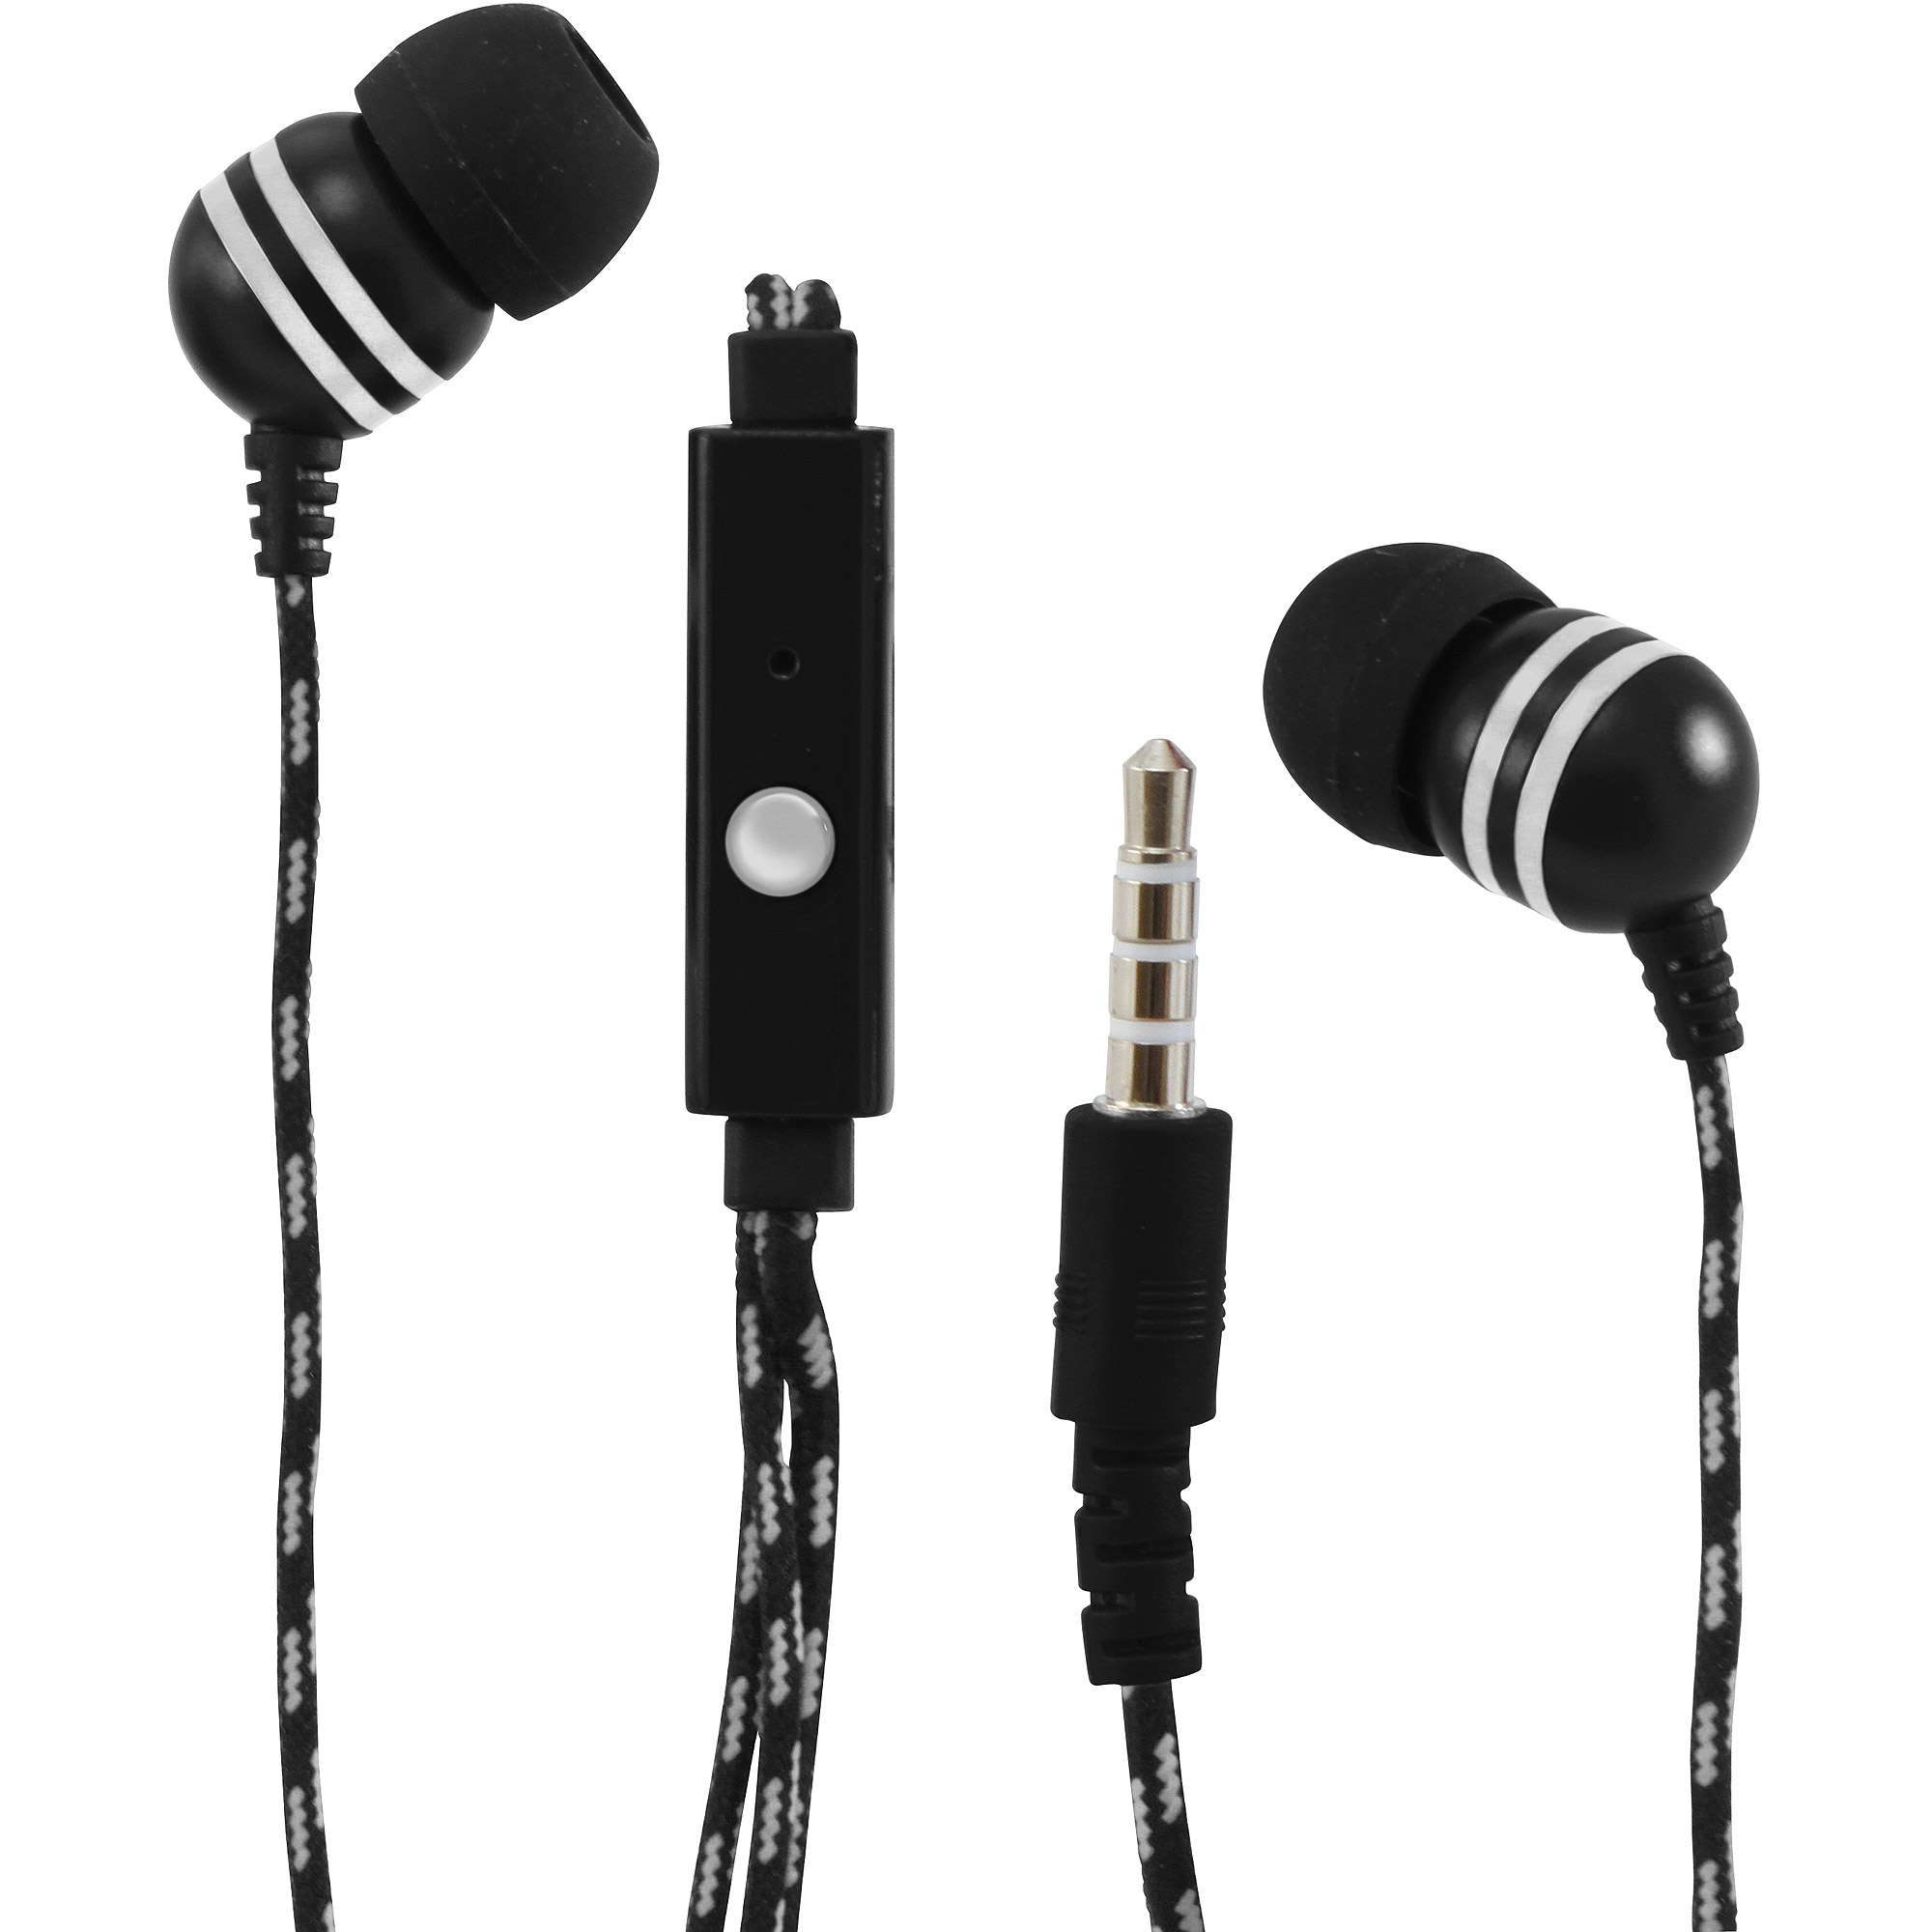 Sentry Stinger Earbuds with Microphone